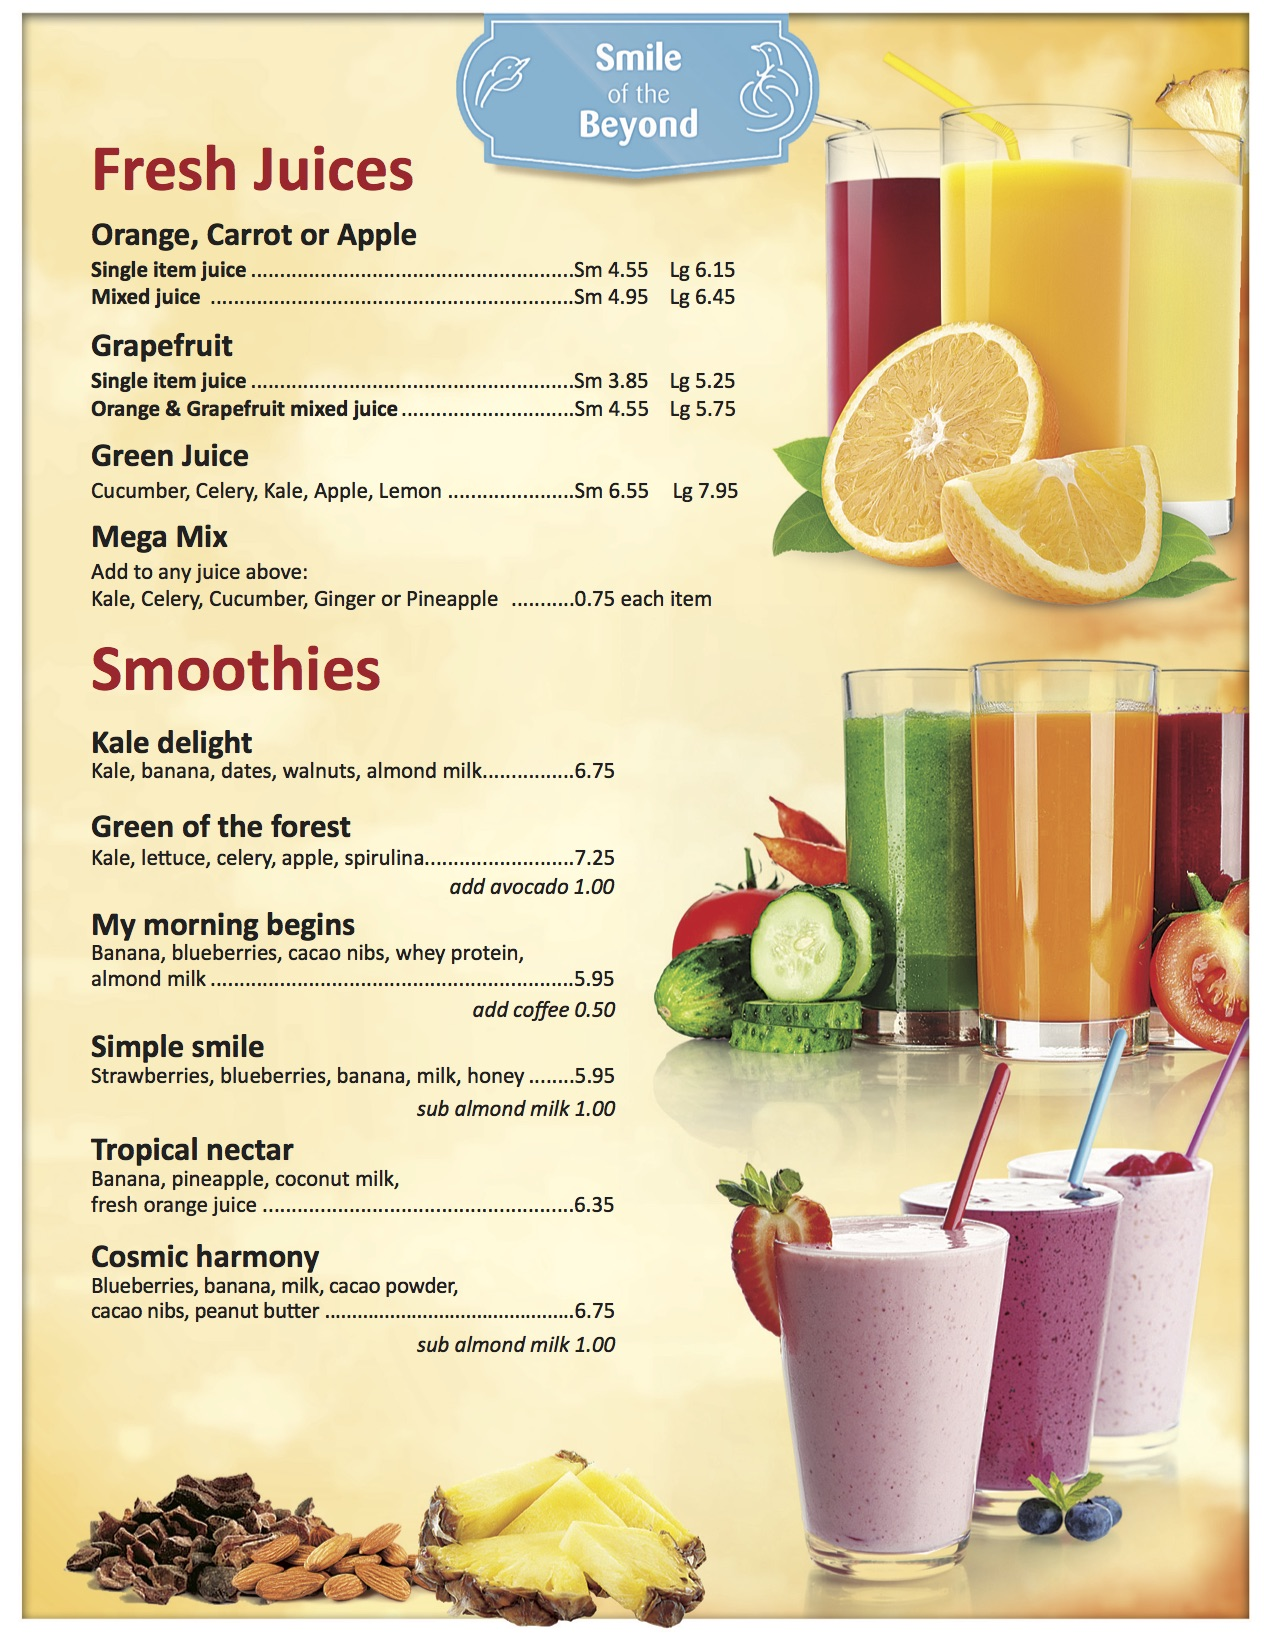 Juices Smoothies_001